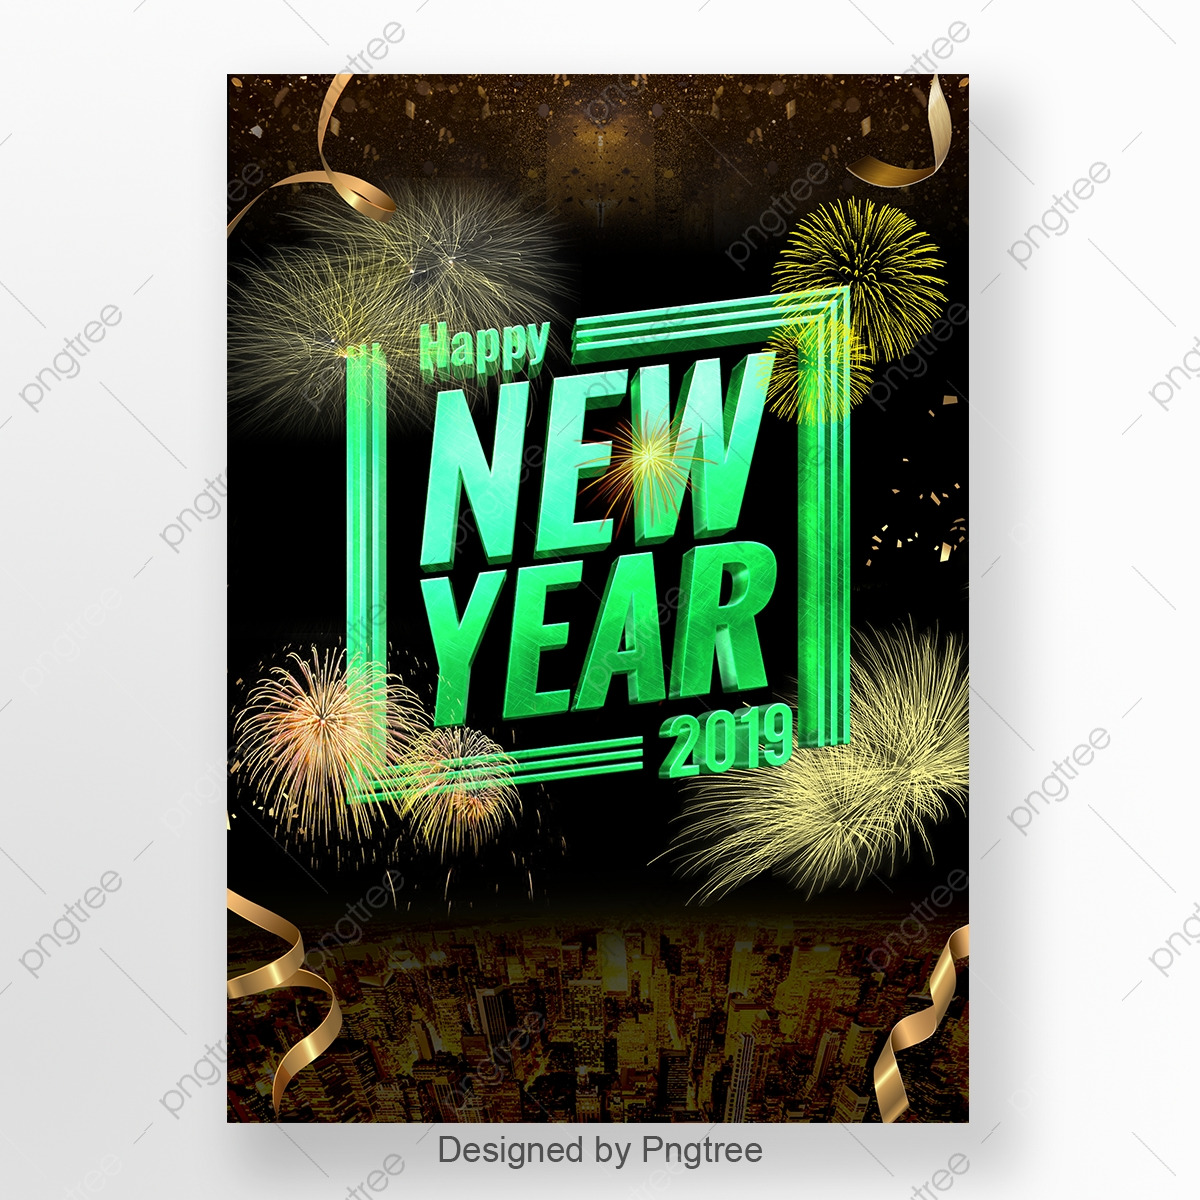 Happy Year Fireworks Transparent Stock Illustrations – 840 Happy Year  Fireworks Transparent Stock Illustrations, Vectors & Clipart - Dreamstime